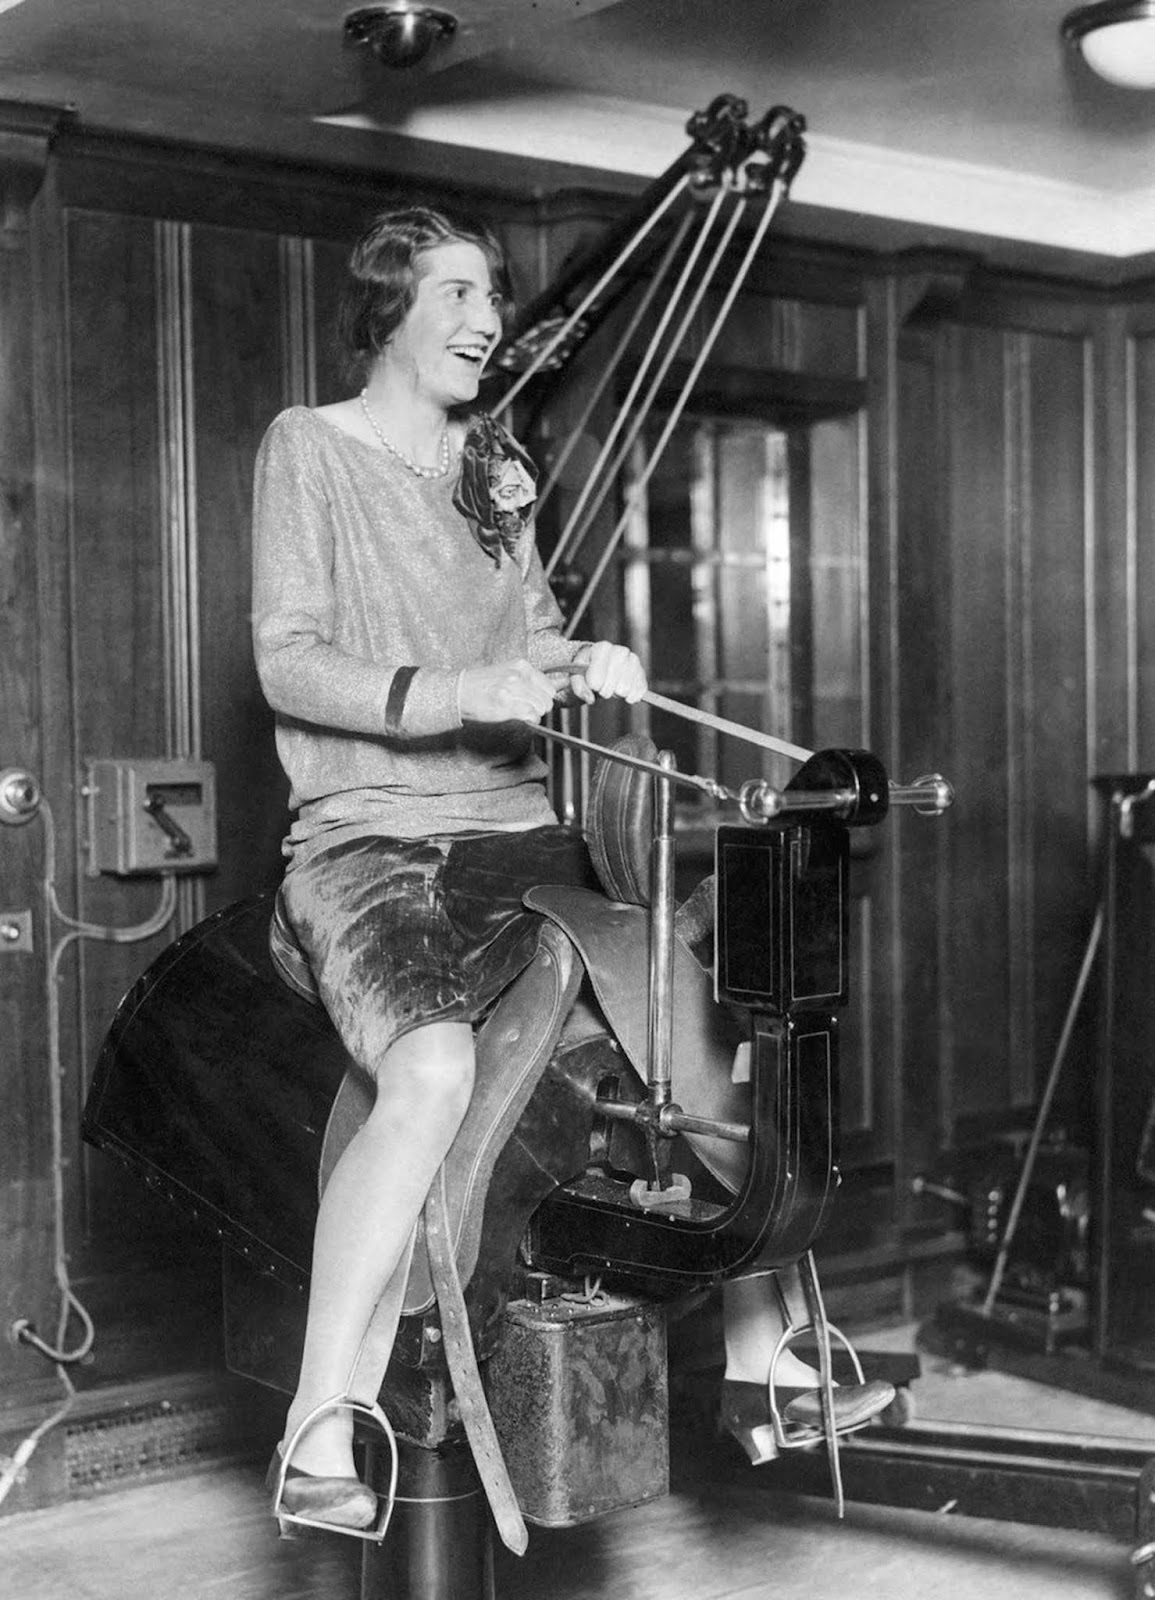 A young woman passenger riding the electric horse in the gym on the liner SS Bermuda. Mid 1920s.